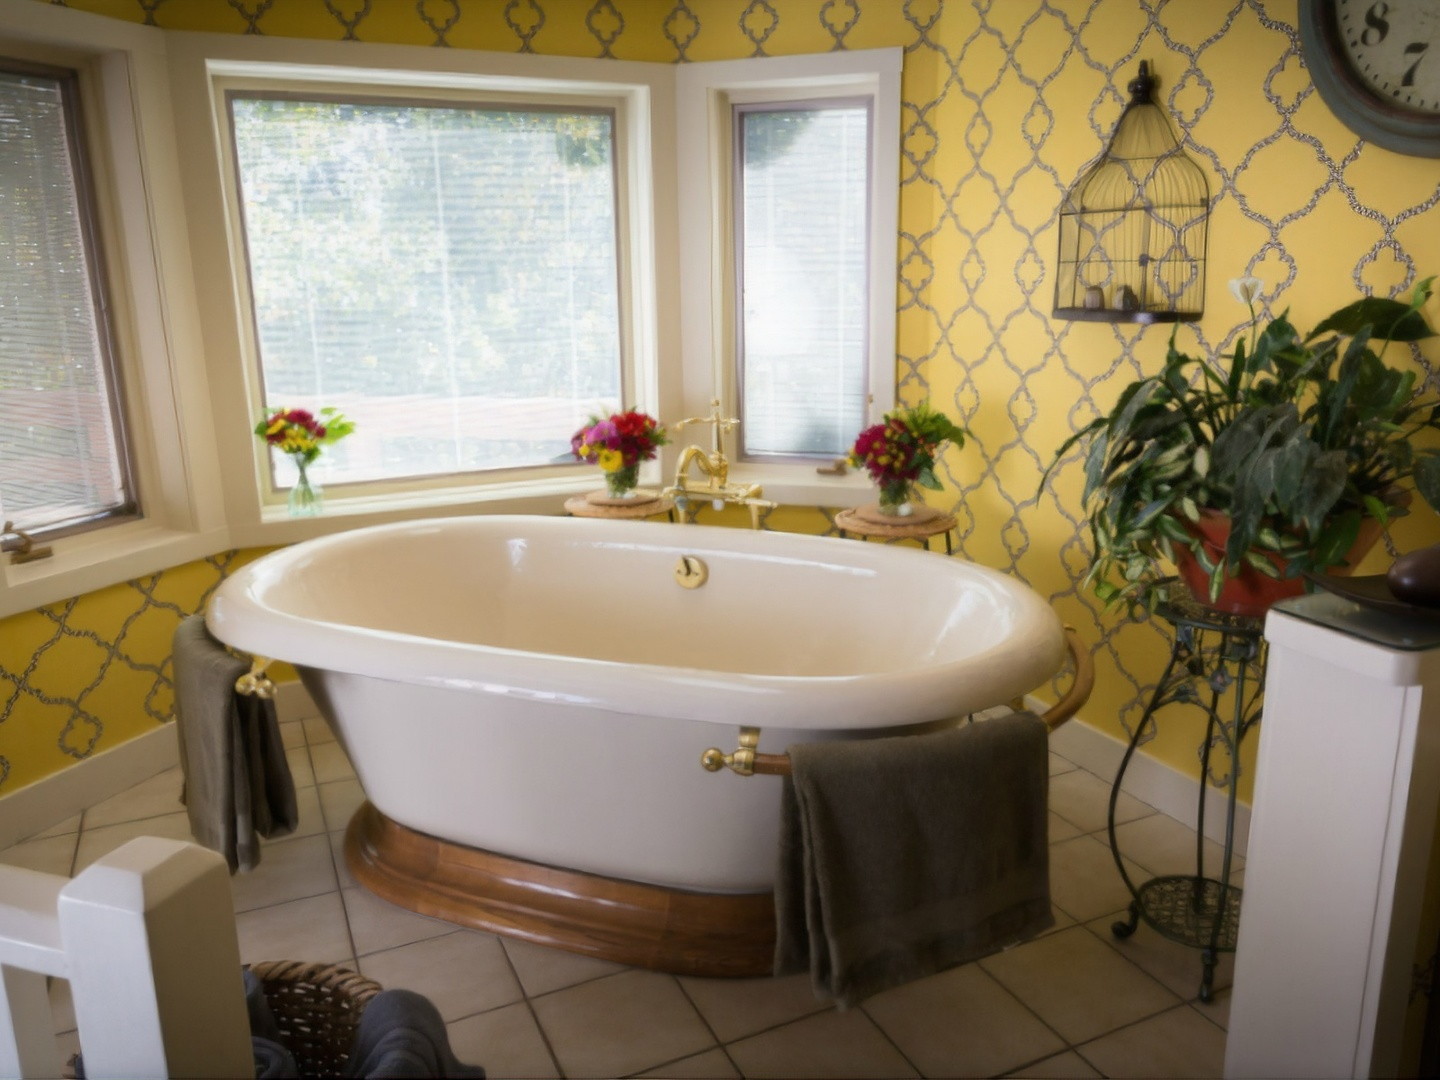 A large white tub sitting next to a window at Country Willows Inn & Estate.